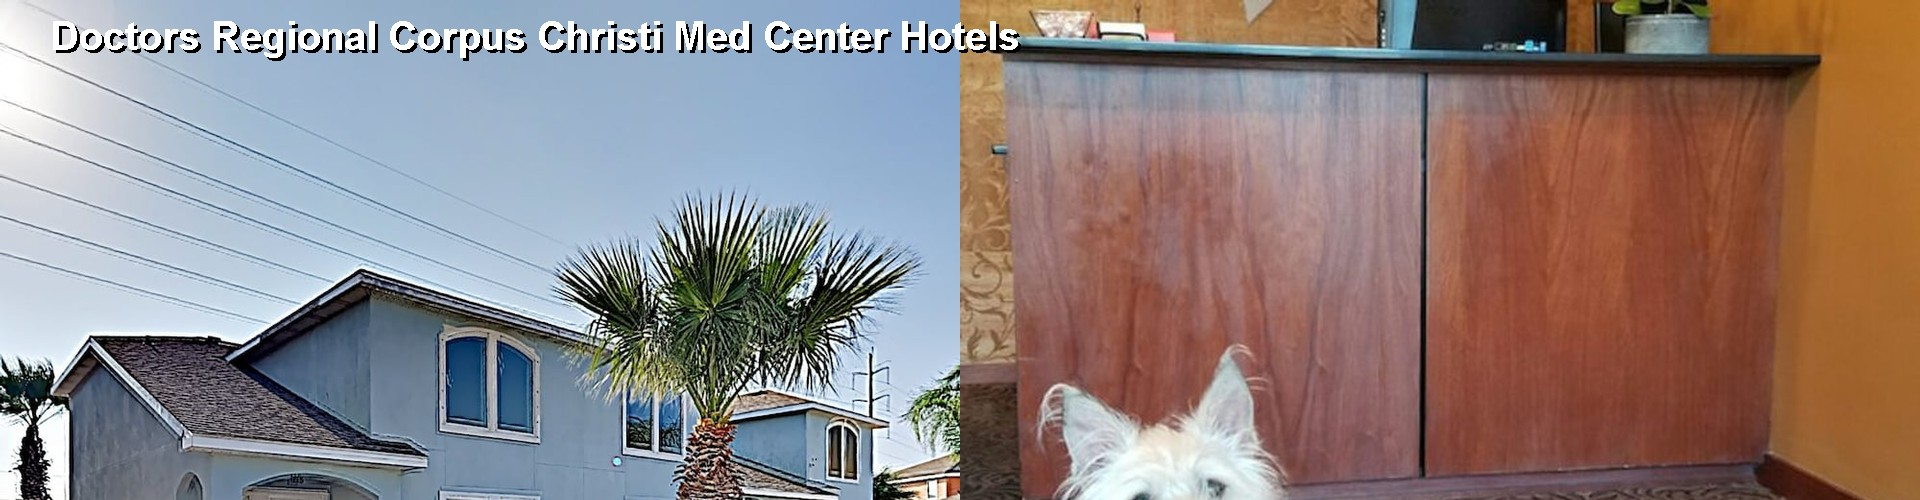 5 Best Hotels near Doctors Regional Corpus Christi Med Center